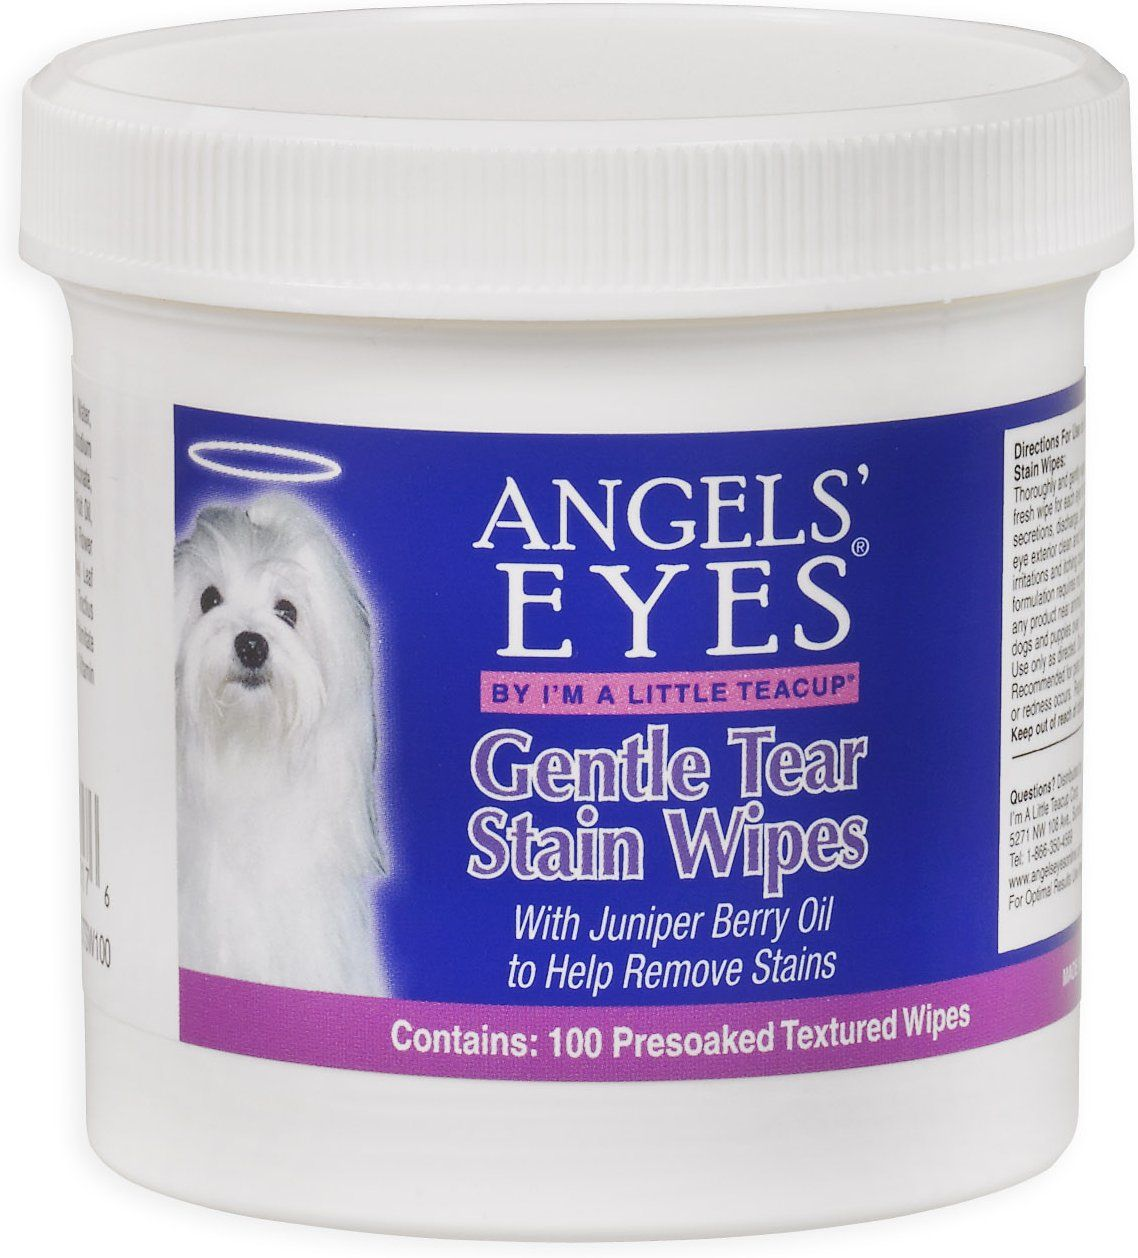 Angels Eyes Gentle Tear Stain Wipes For Dogs 100 Count Chewy Com Tear Stains Eye Care Natural Chicken